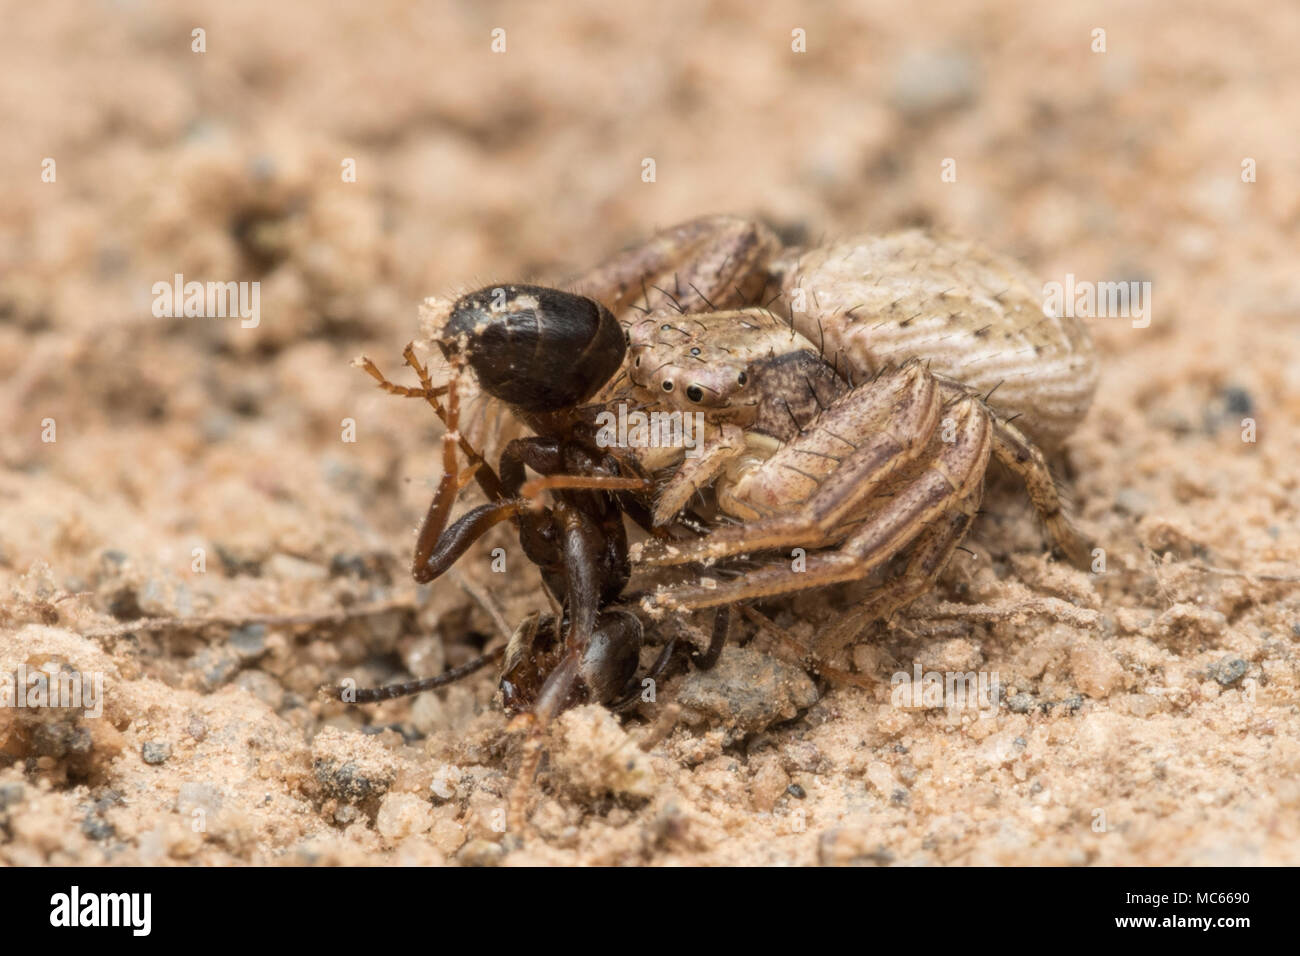 Crab spider (Xysticus sp.) feeding on an ant. Tipperary, Ireland - Stock Image